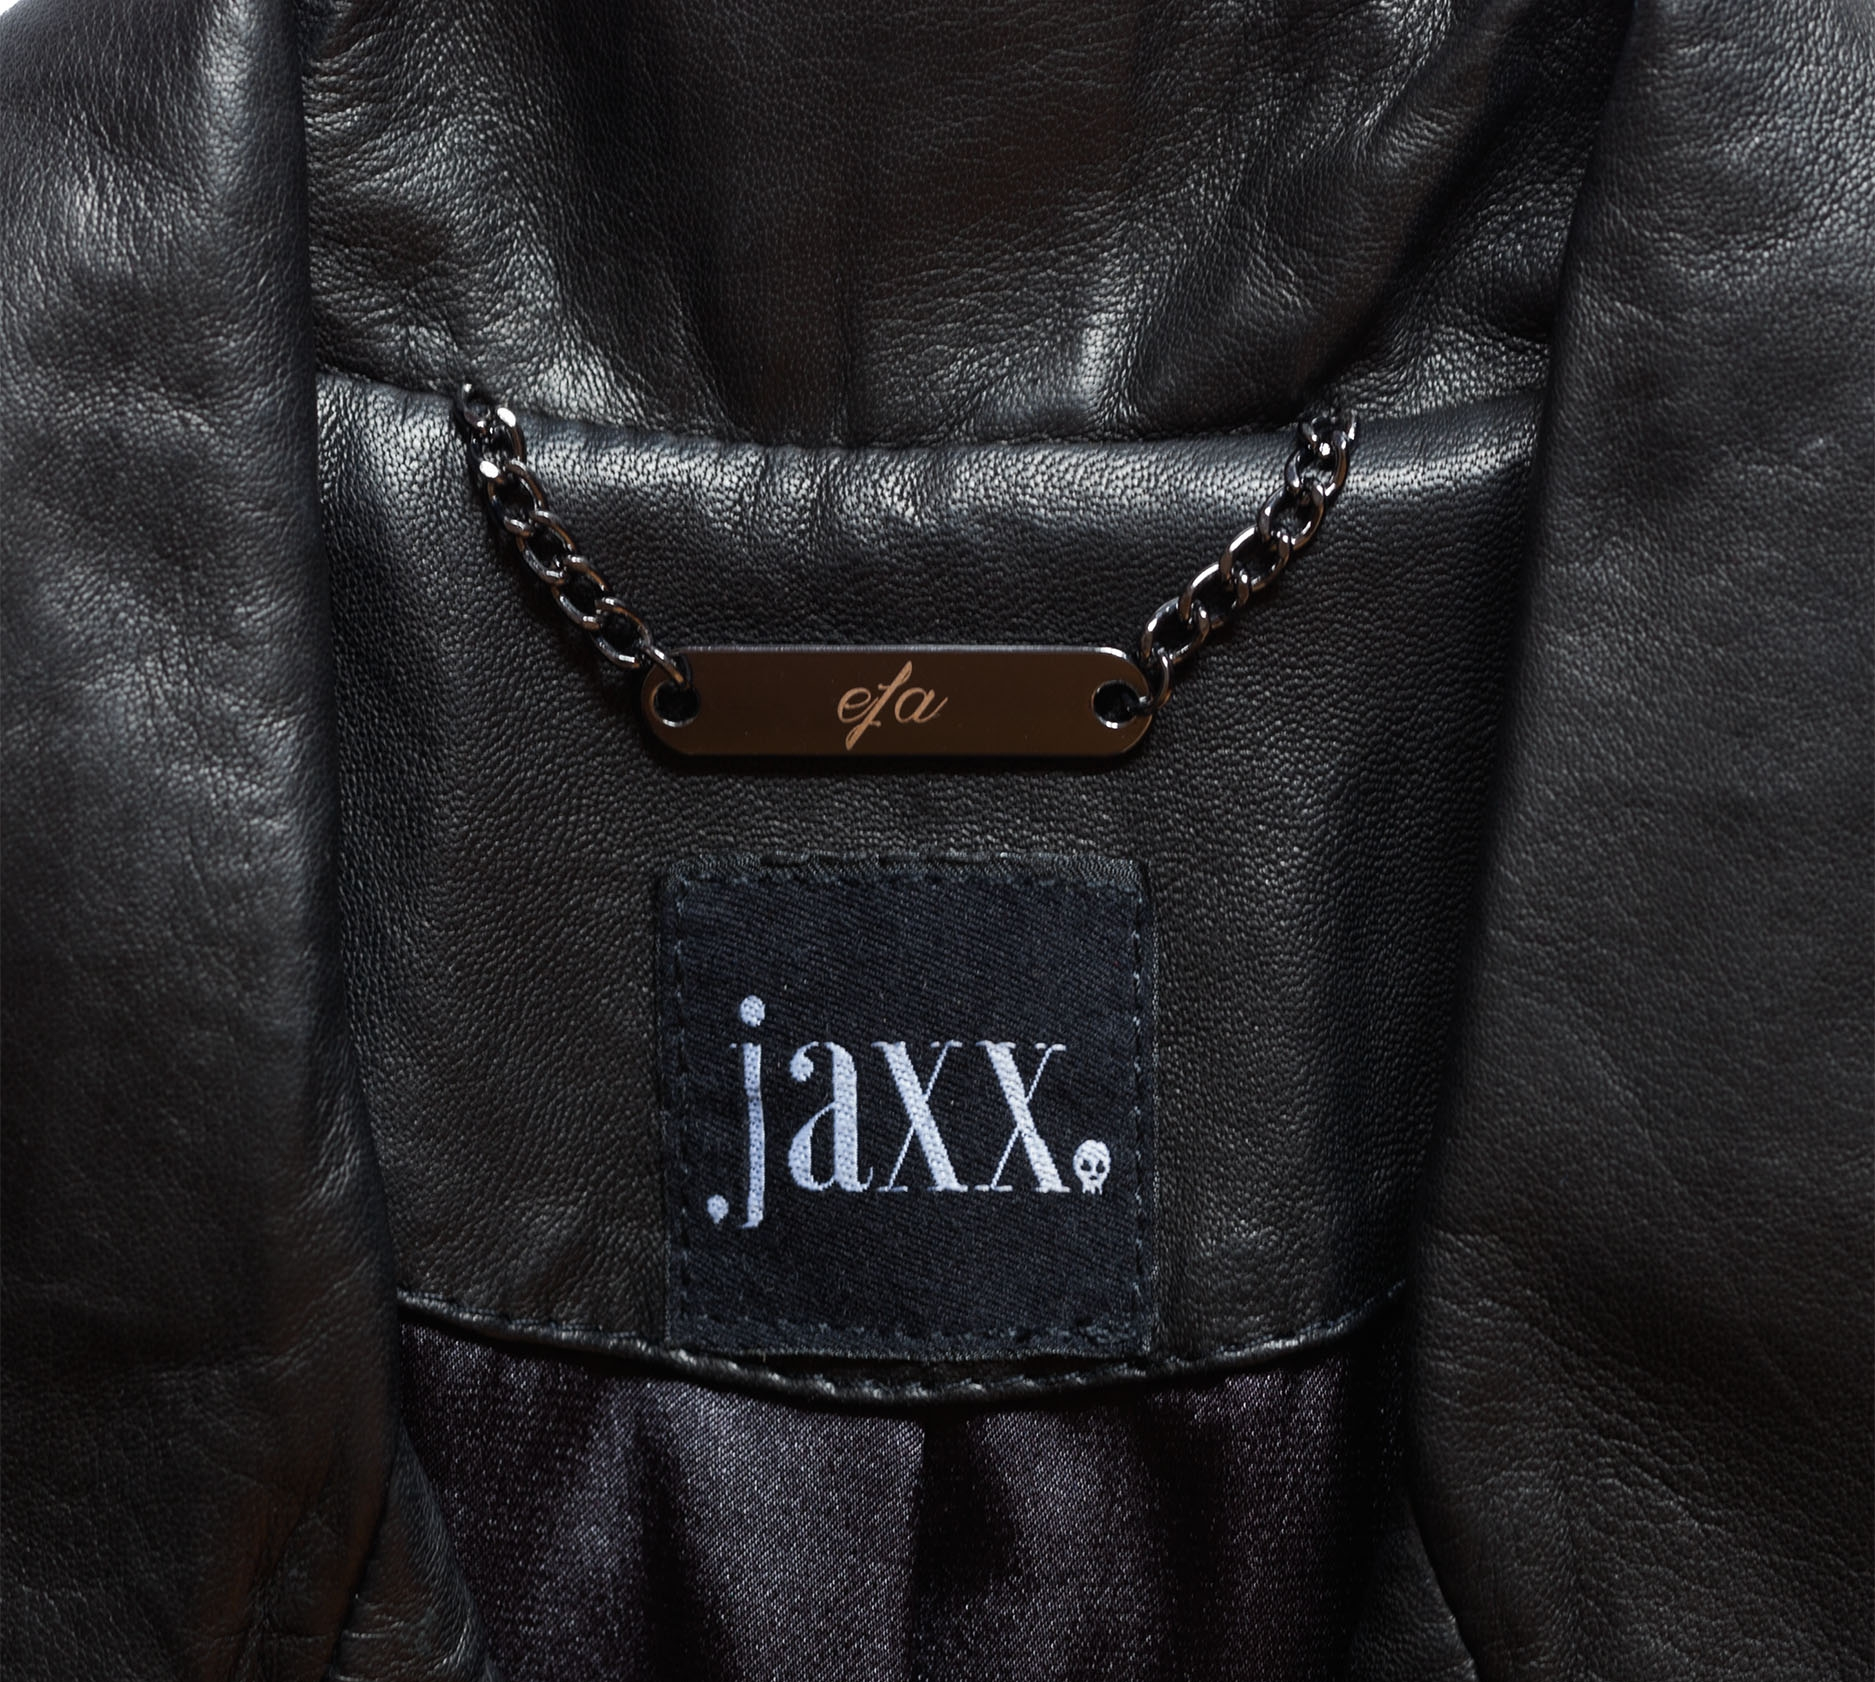 Add Your Initials - Personalise your Jaxx in customisable initials and font.